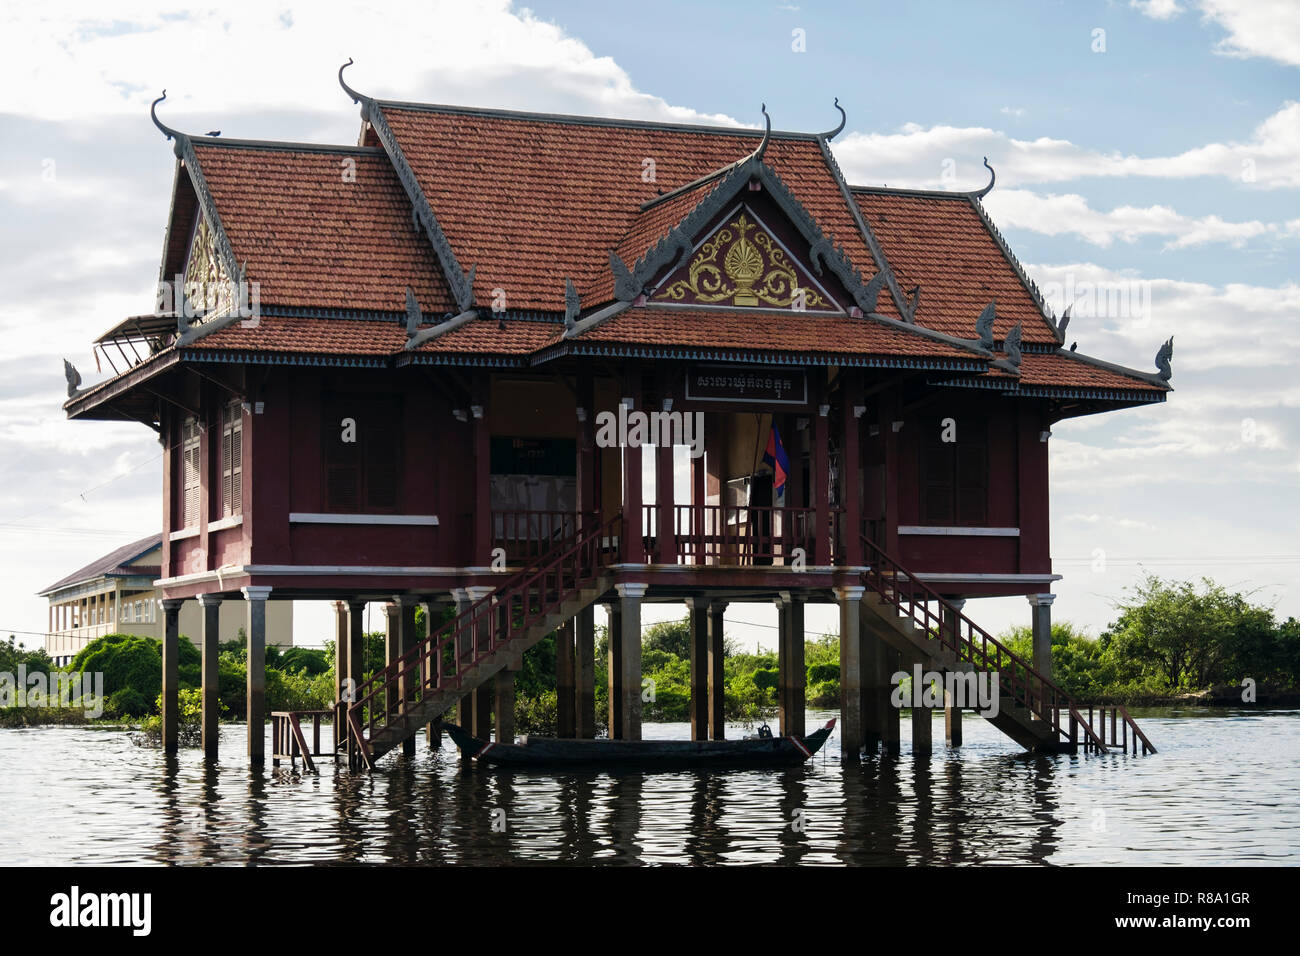 House on stilts in floating village in Tonle Sap. Kampong Phluk, Siem Reap province, Cambodia, southeast Asia Stock Photo